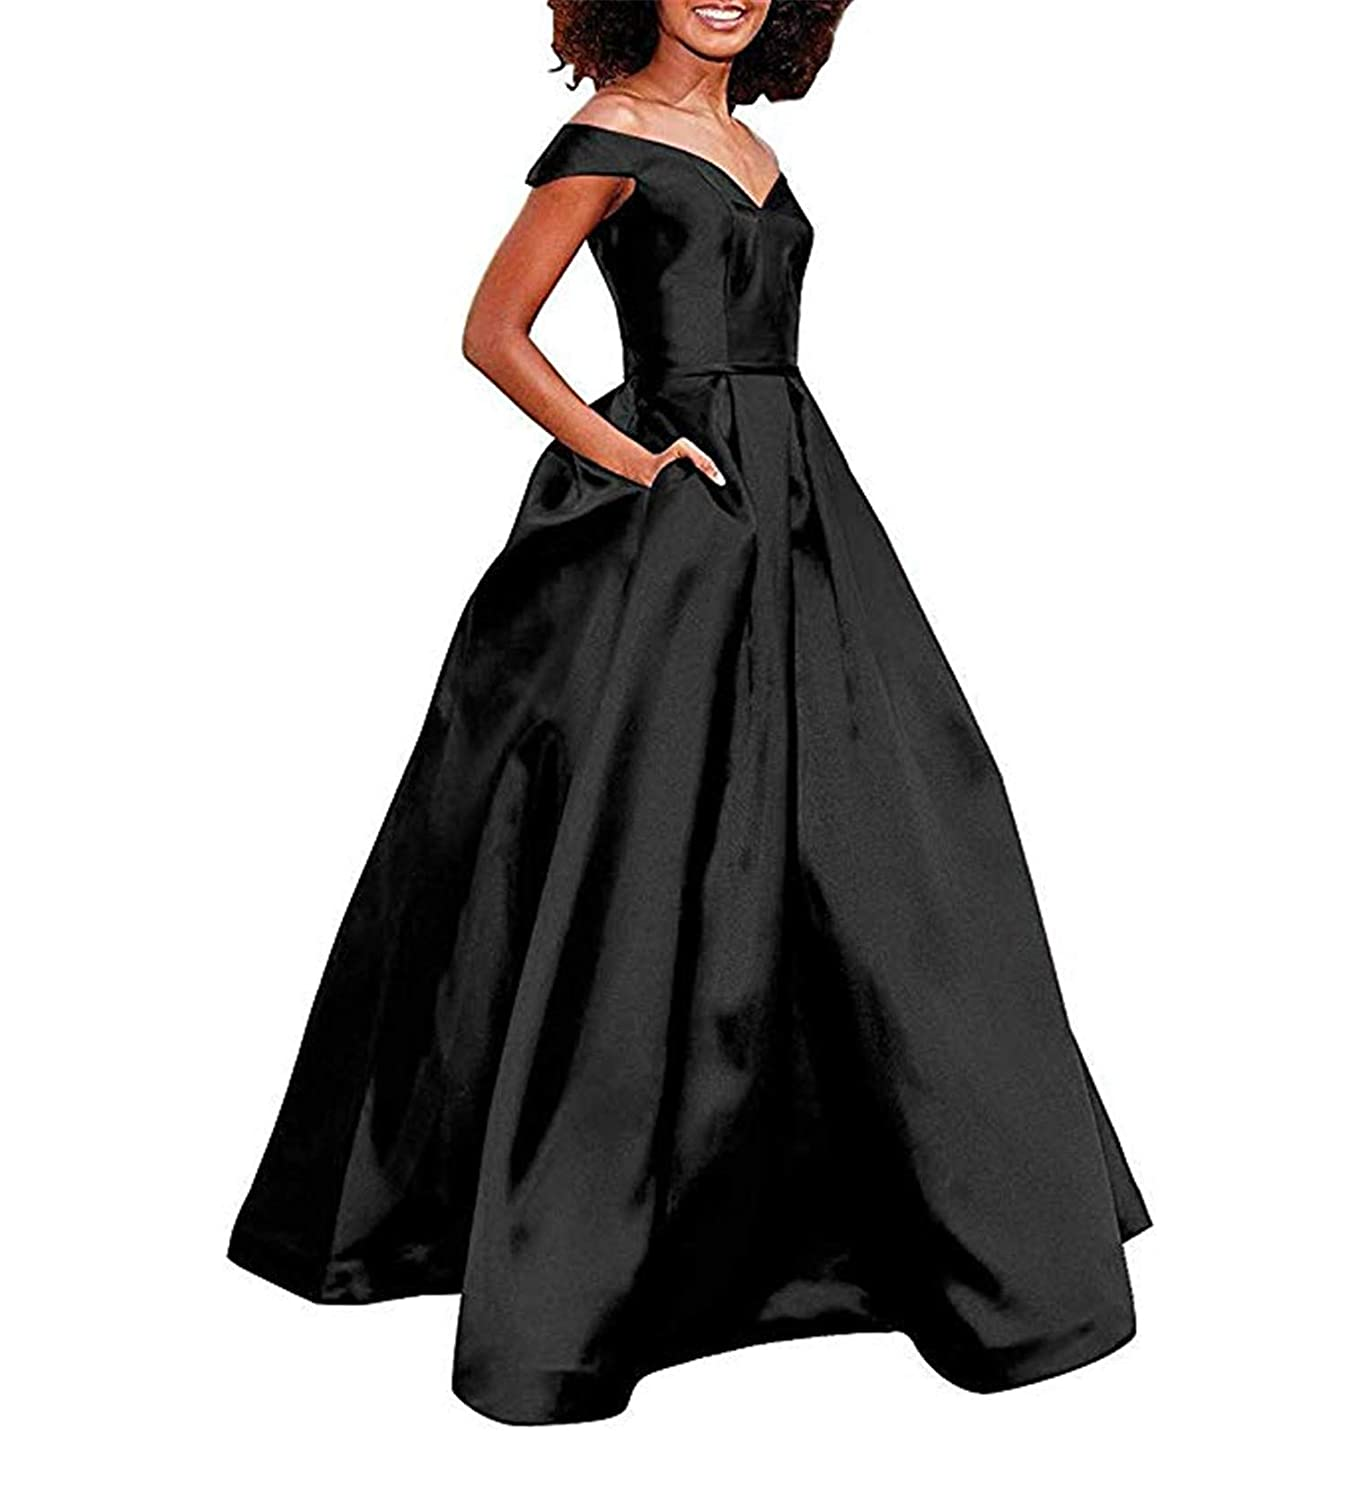 Black Women's Off The Shoulder A Line Prom Dress Satin Formal Party Ball Gown with Pockets